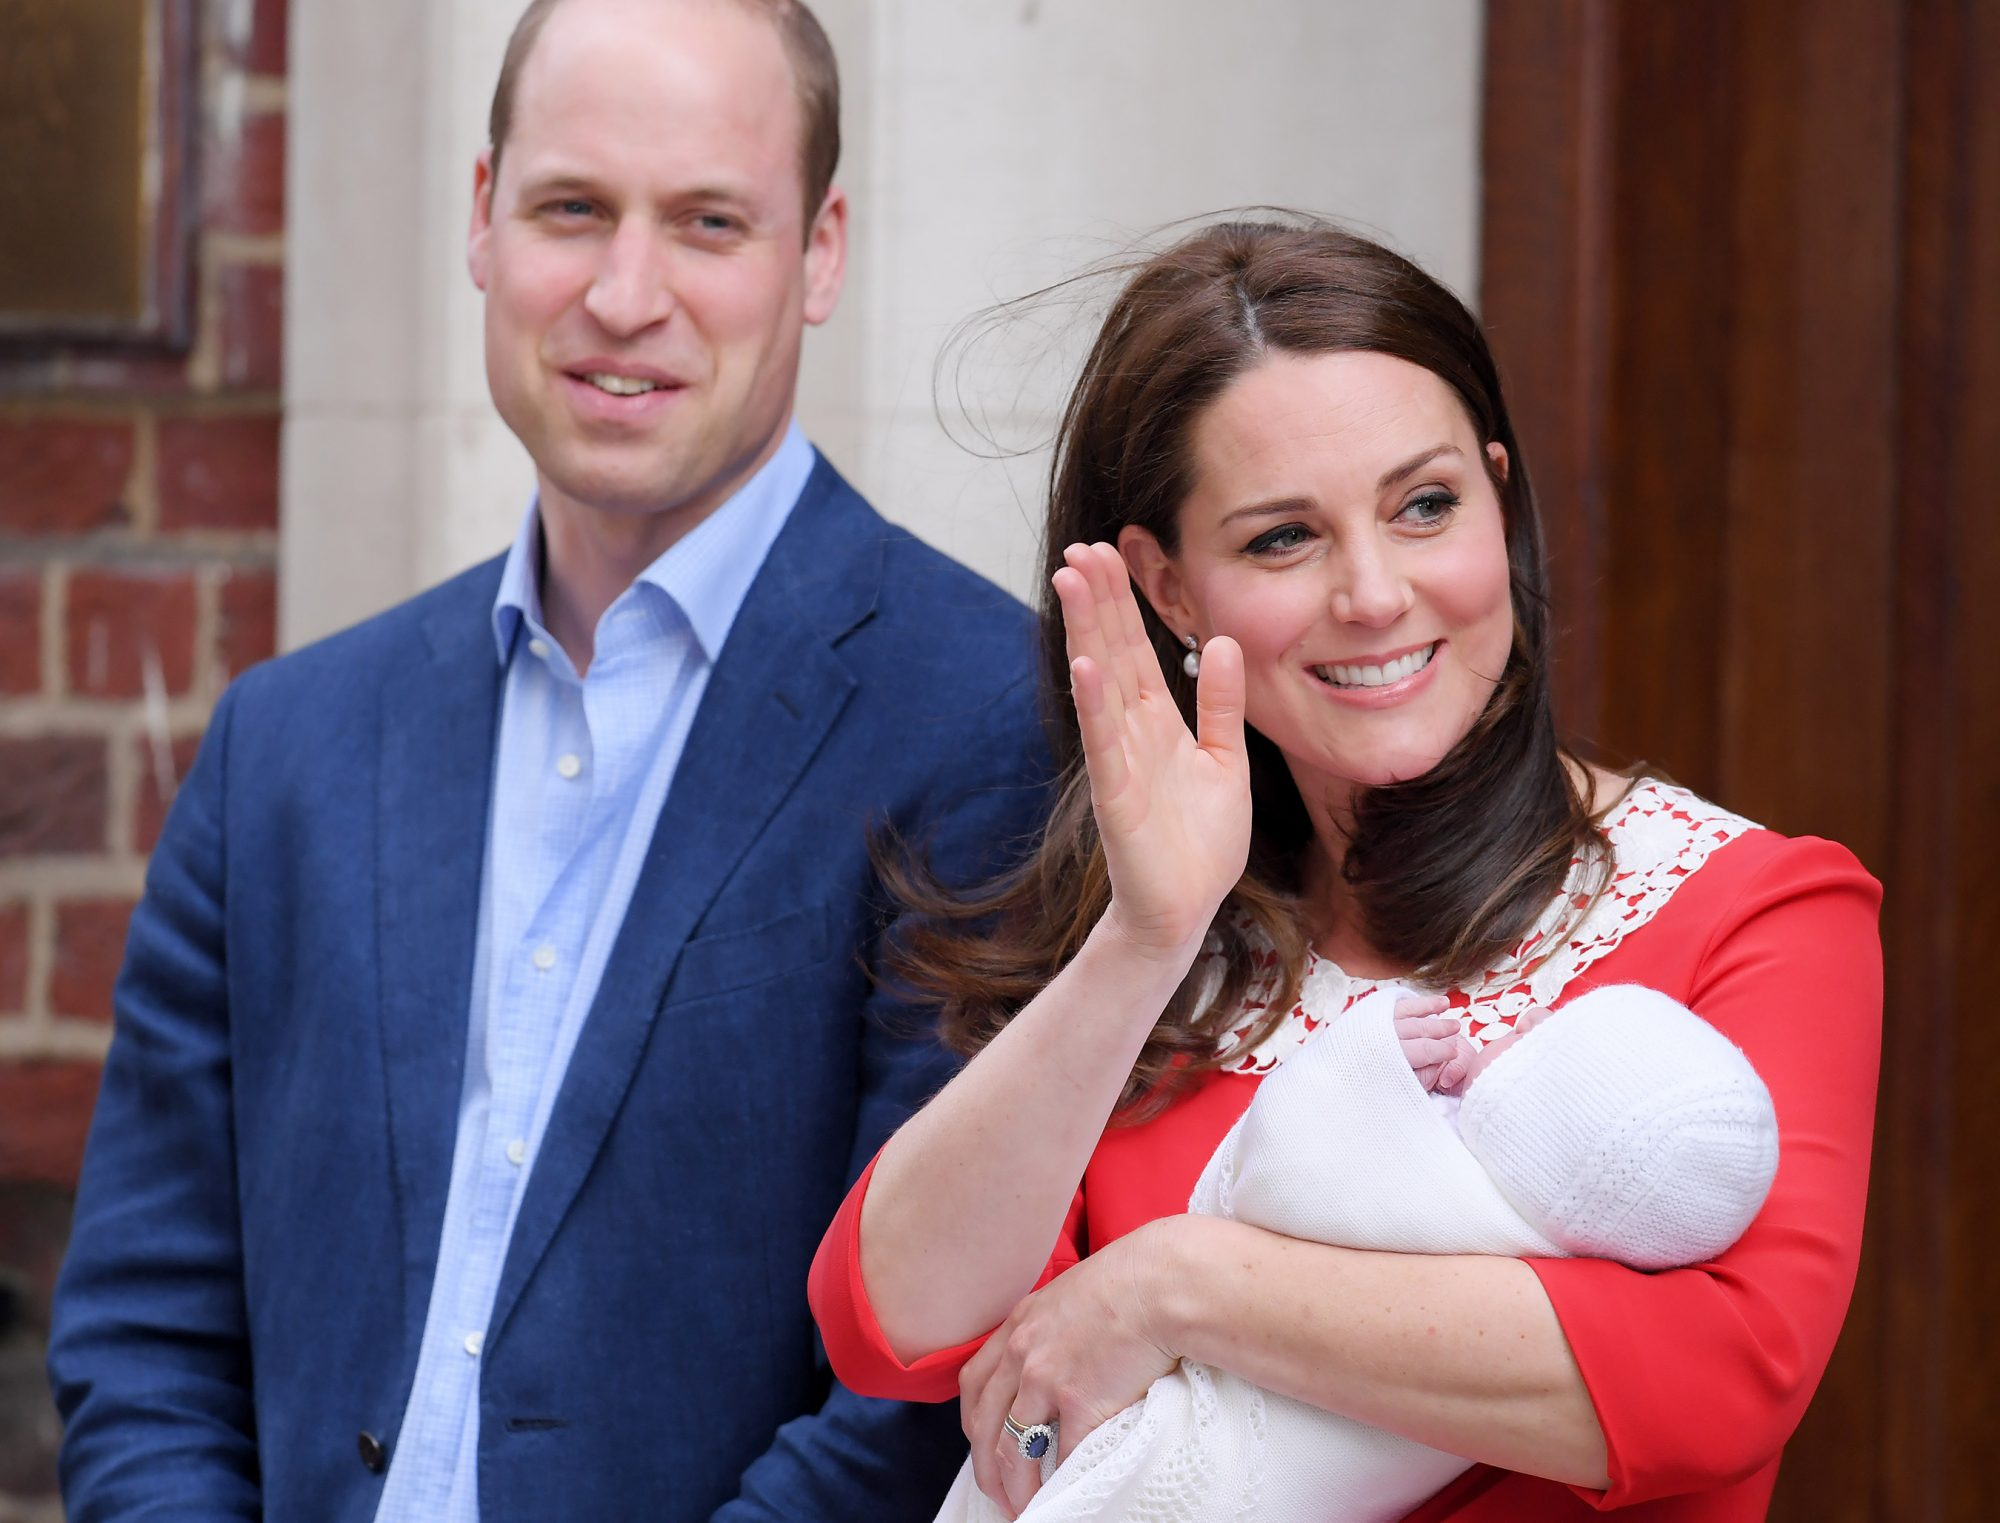 Kate Middleton Steps Out with New Royal Baby Just 7 Hours After Giving Birth: See the Photos! catherine-2